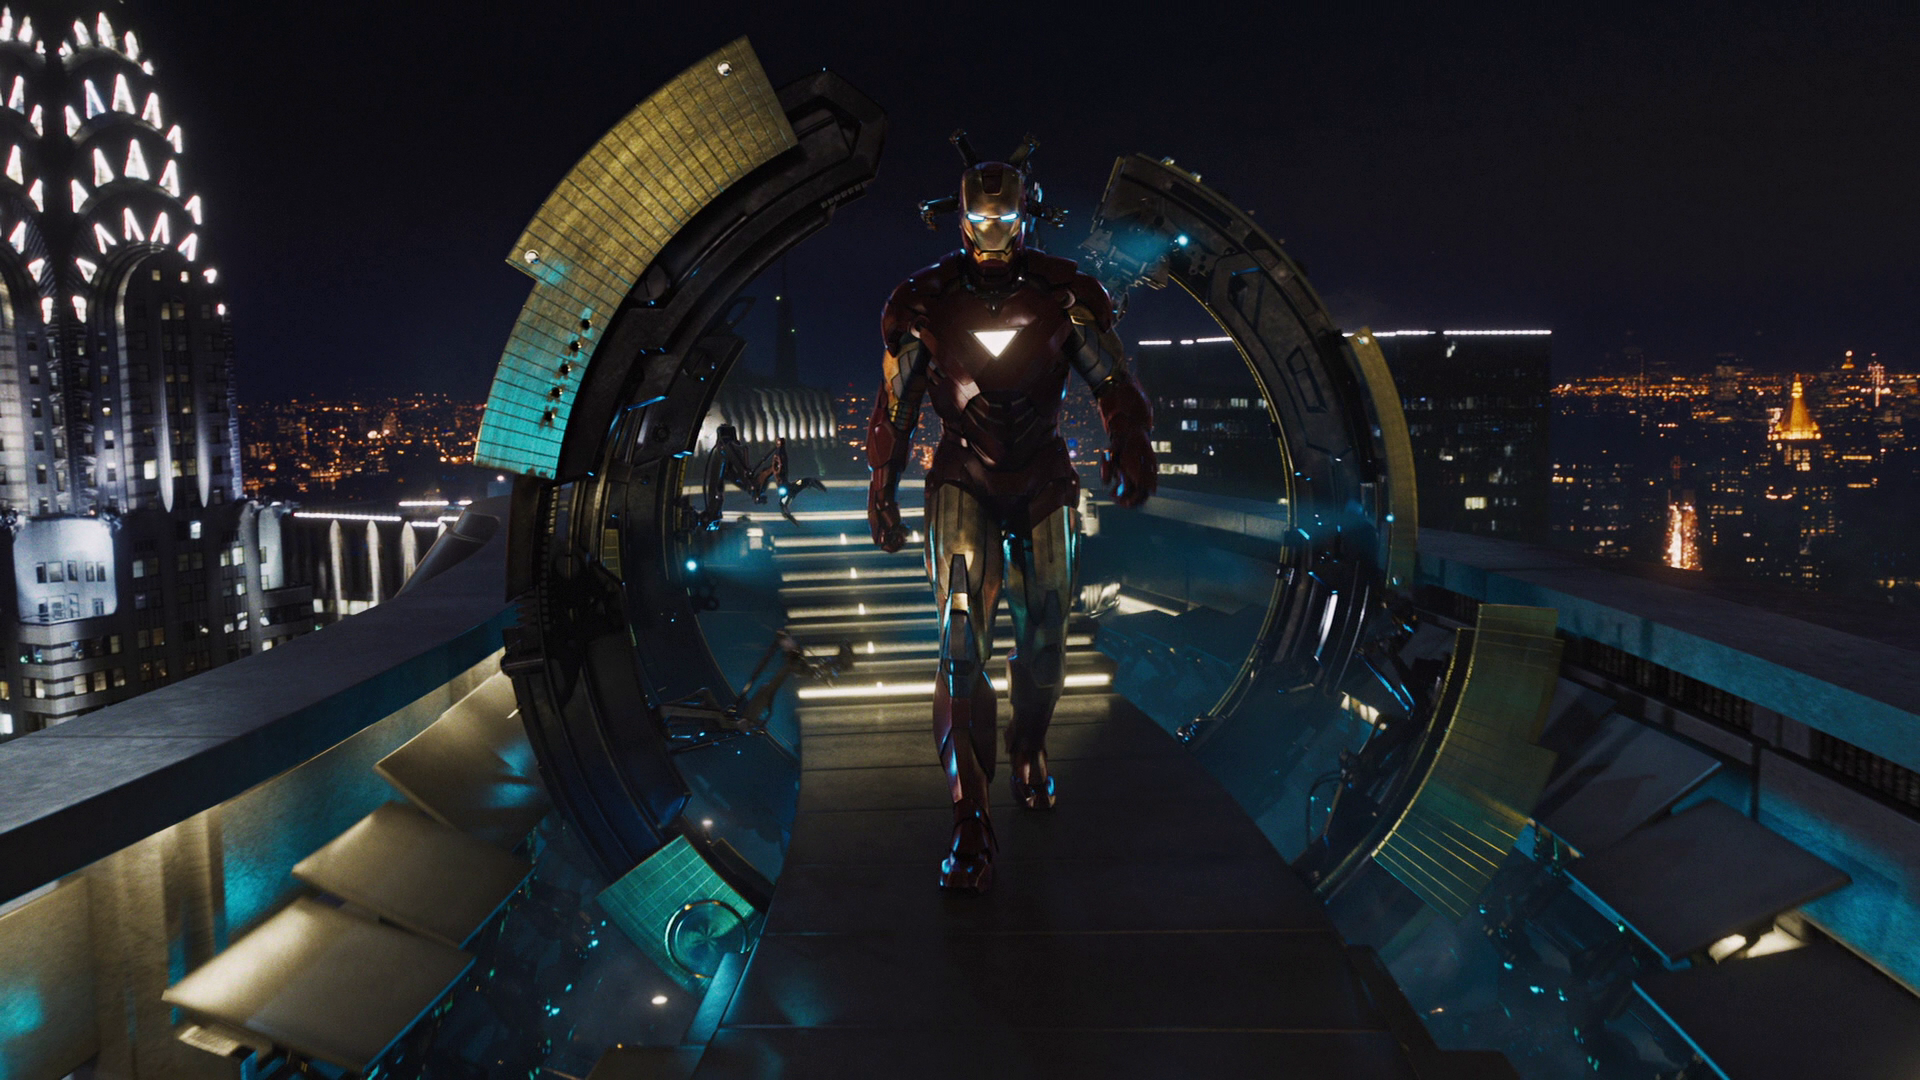 1920x1080 Avengers Tower | Marvel Cinematic Universe Wiki | Fandom